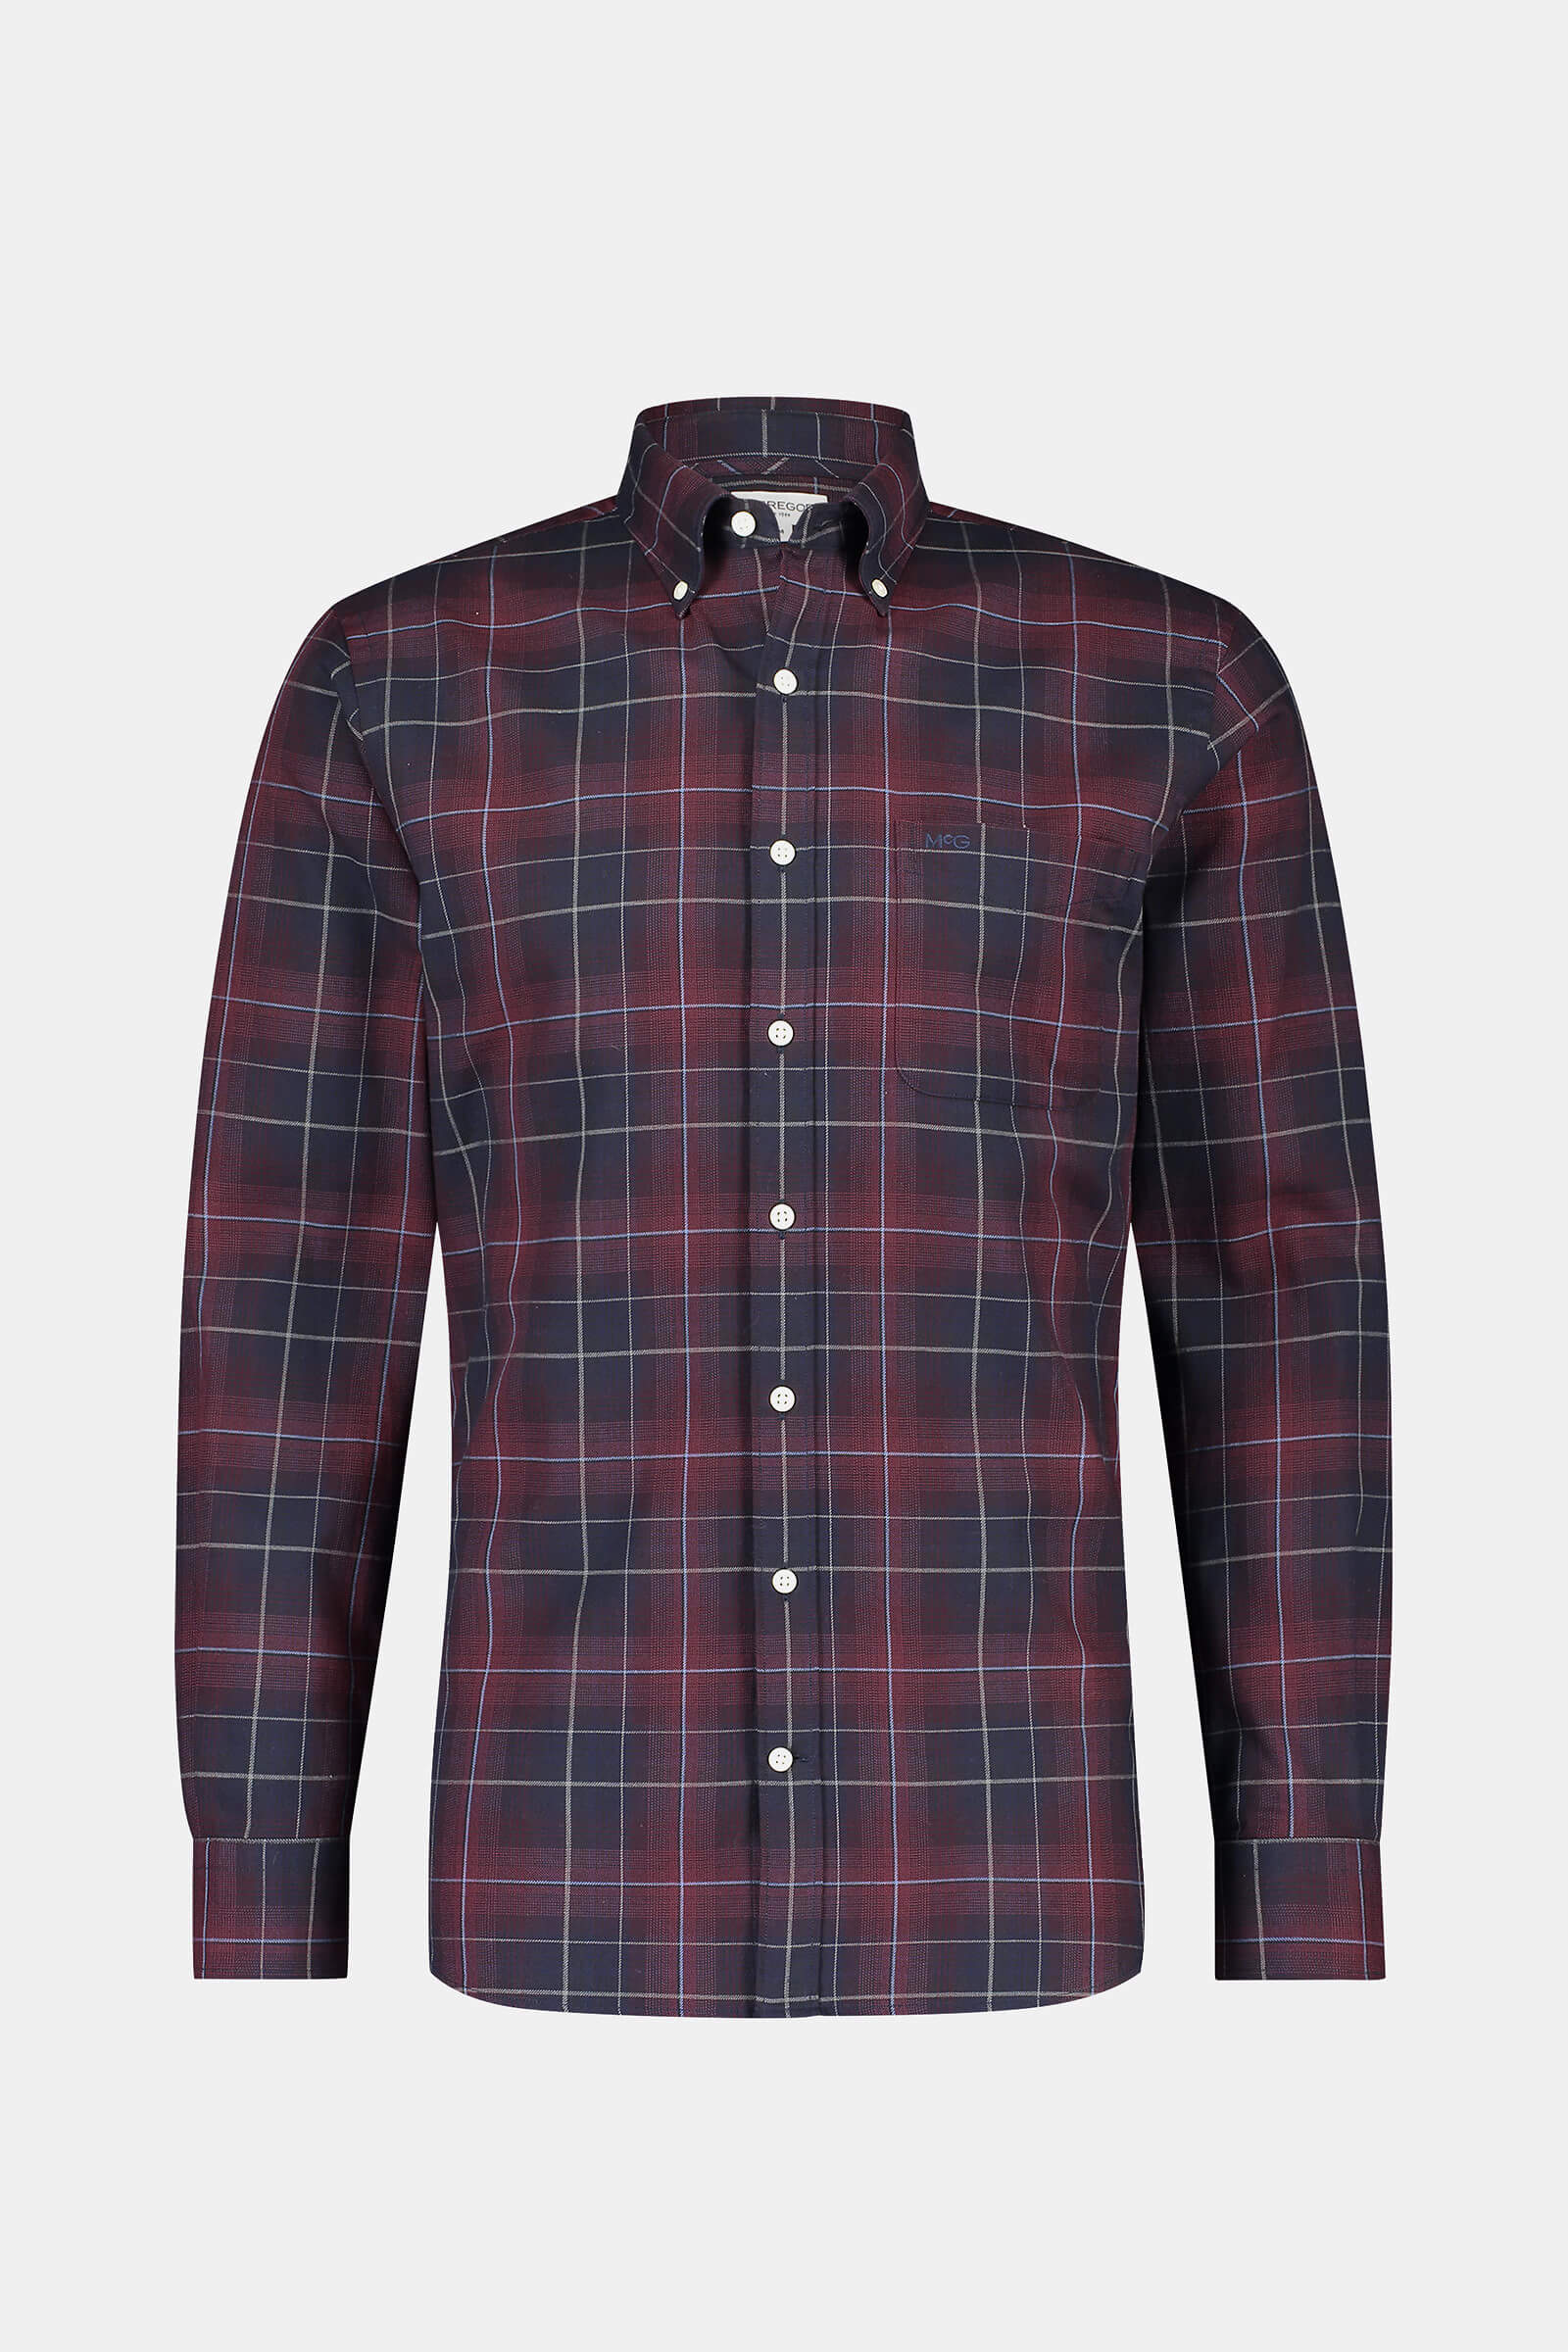 Regular fit Burgundy Check Shirt